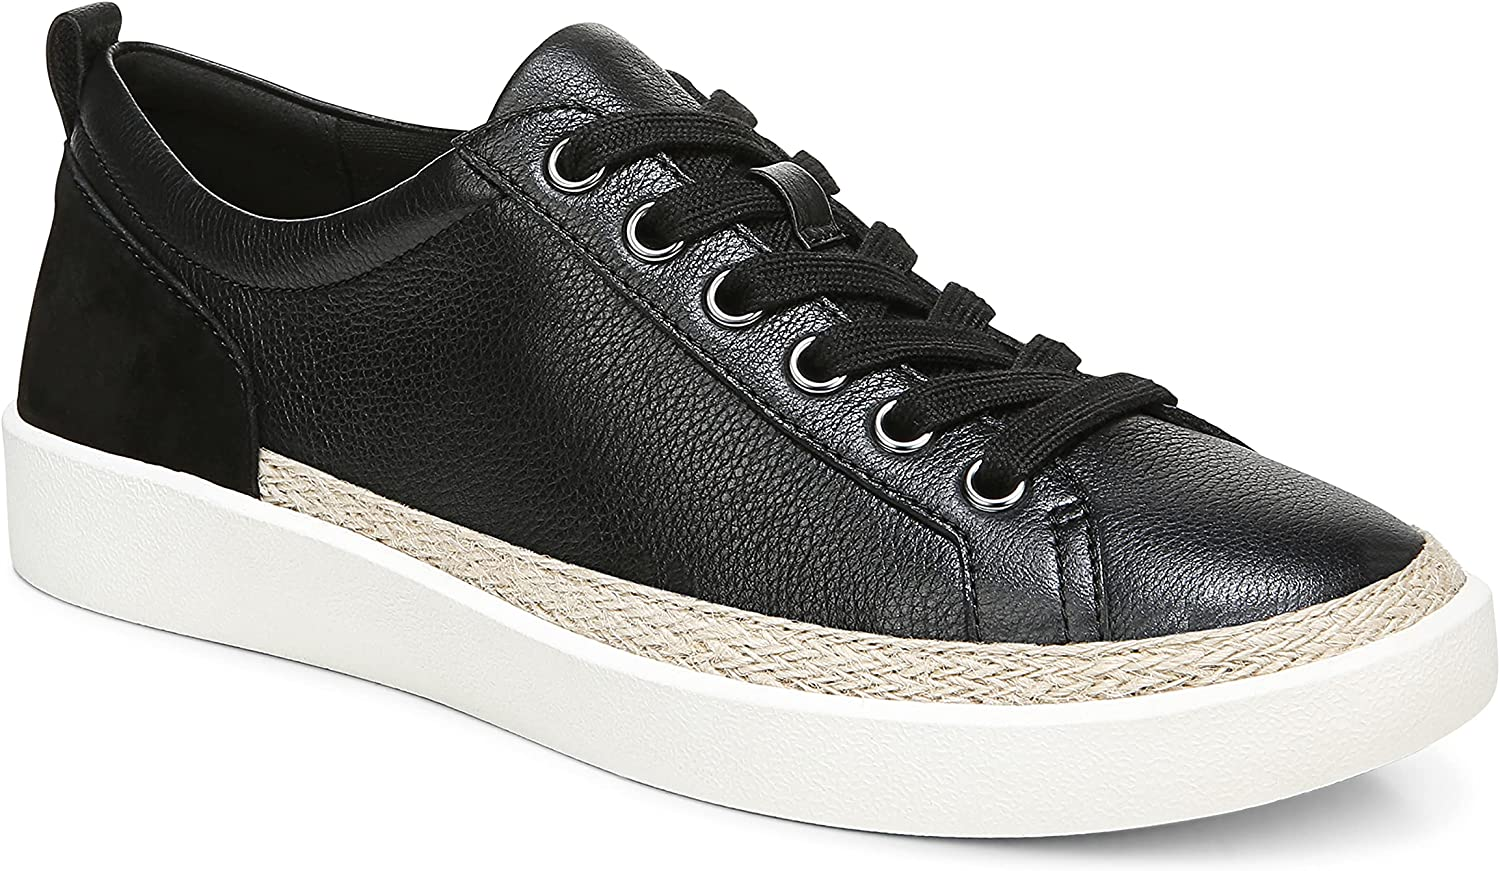 Vionic Women's Essence Winny Elegant Lace Direct sale of manufacturer Up Supportive Sneakers- Ladies